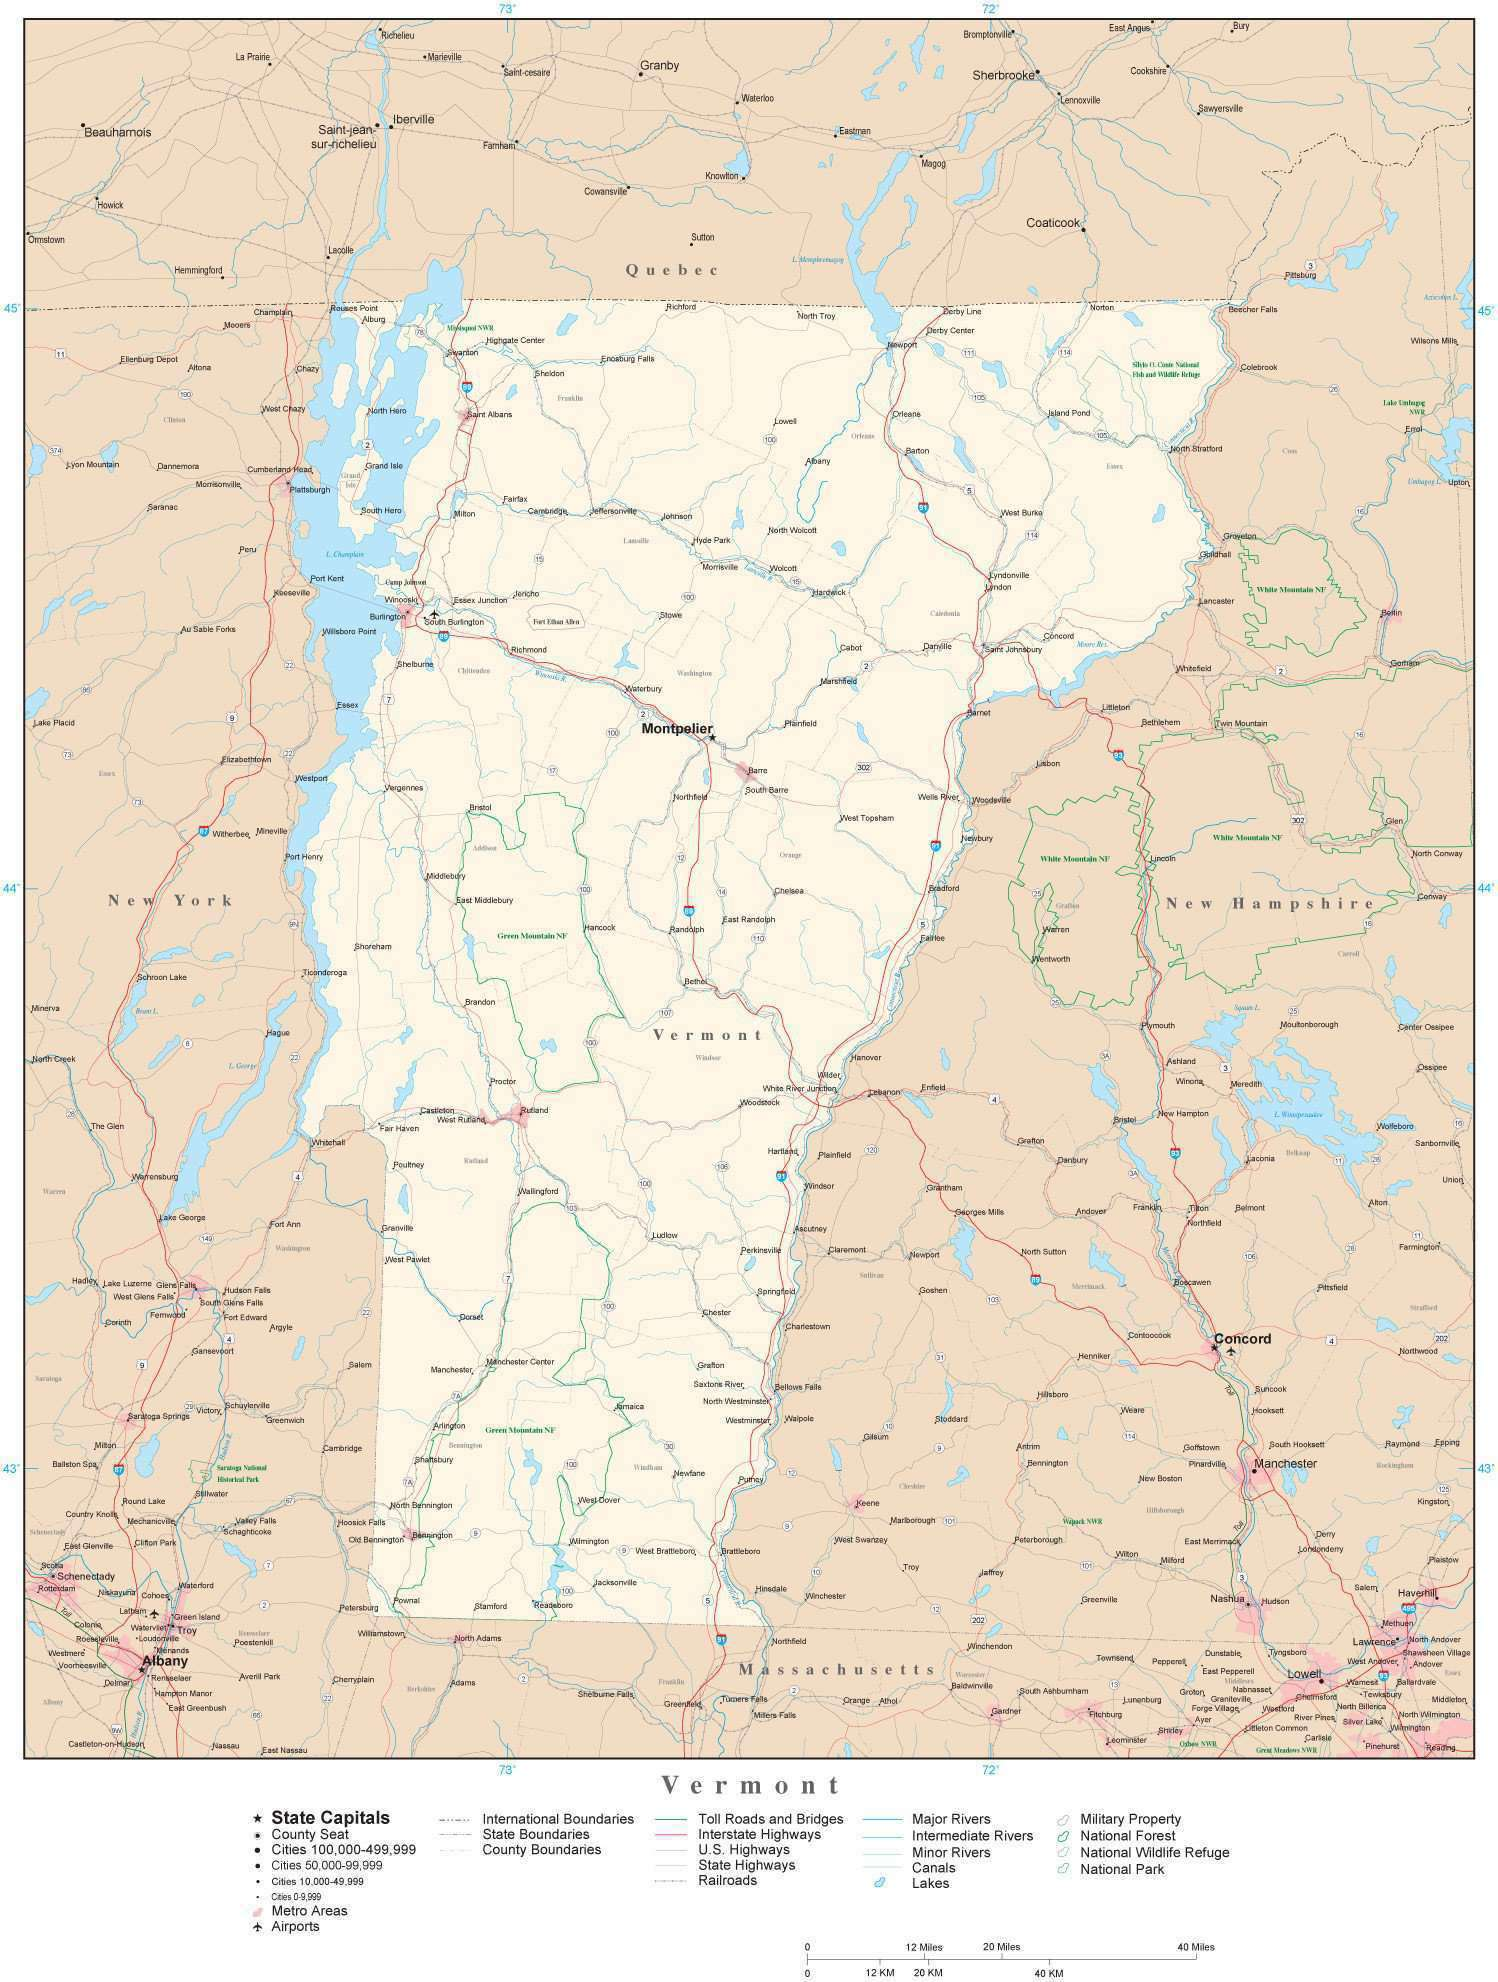 Detailed Vermont Digital Map with County Boundaries, Cities, Highways,  National Parks, and more